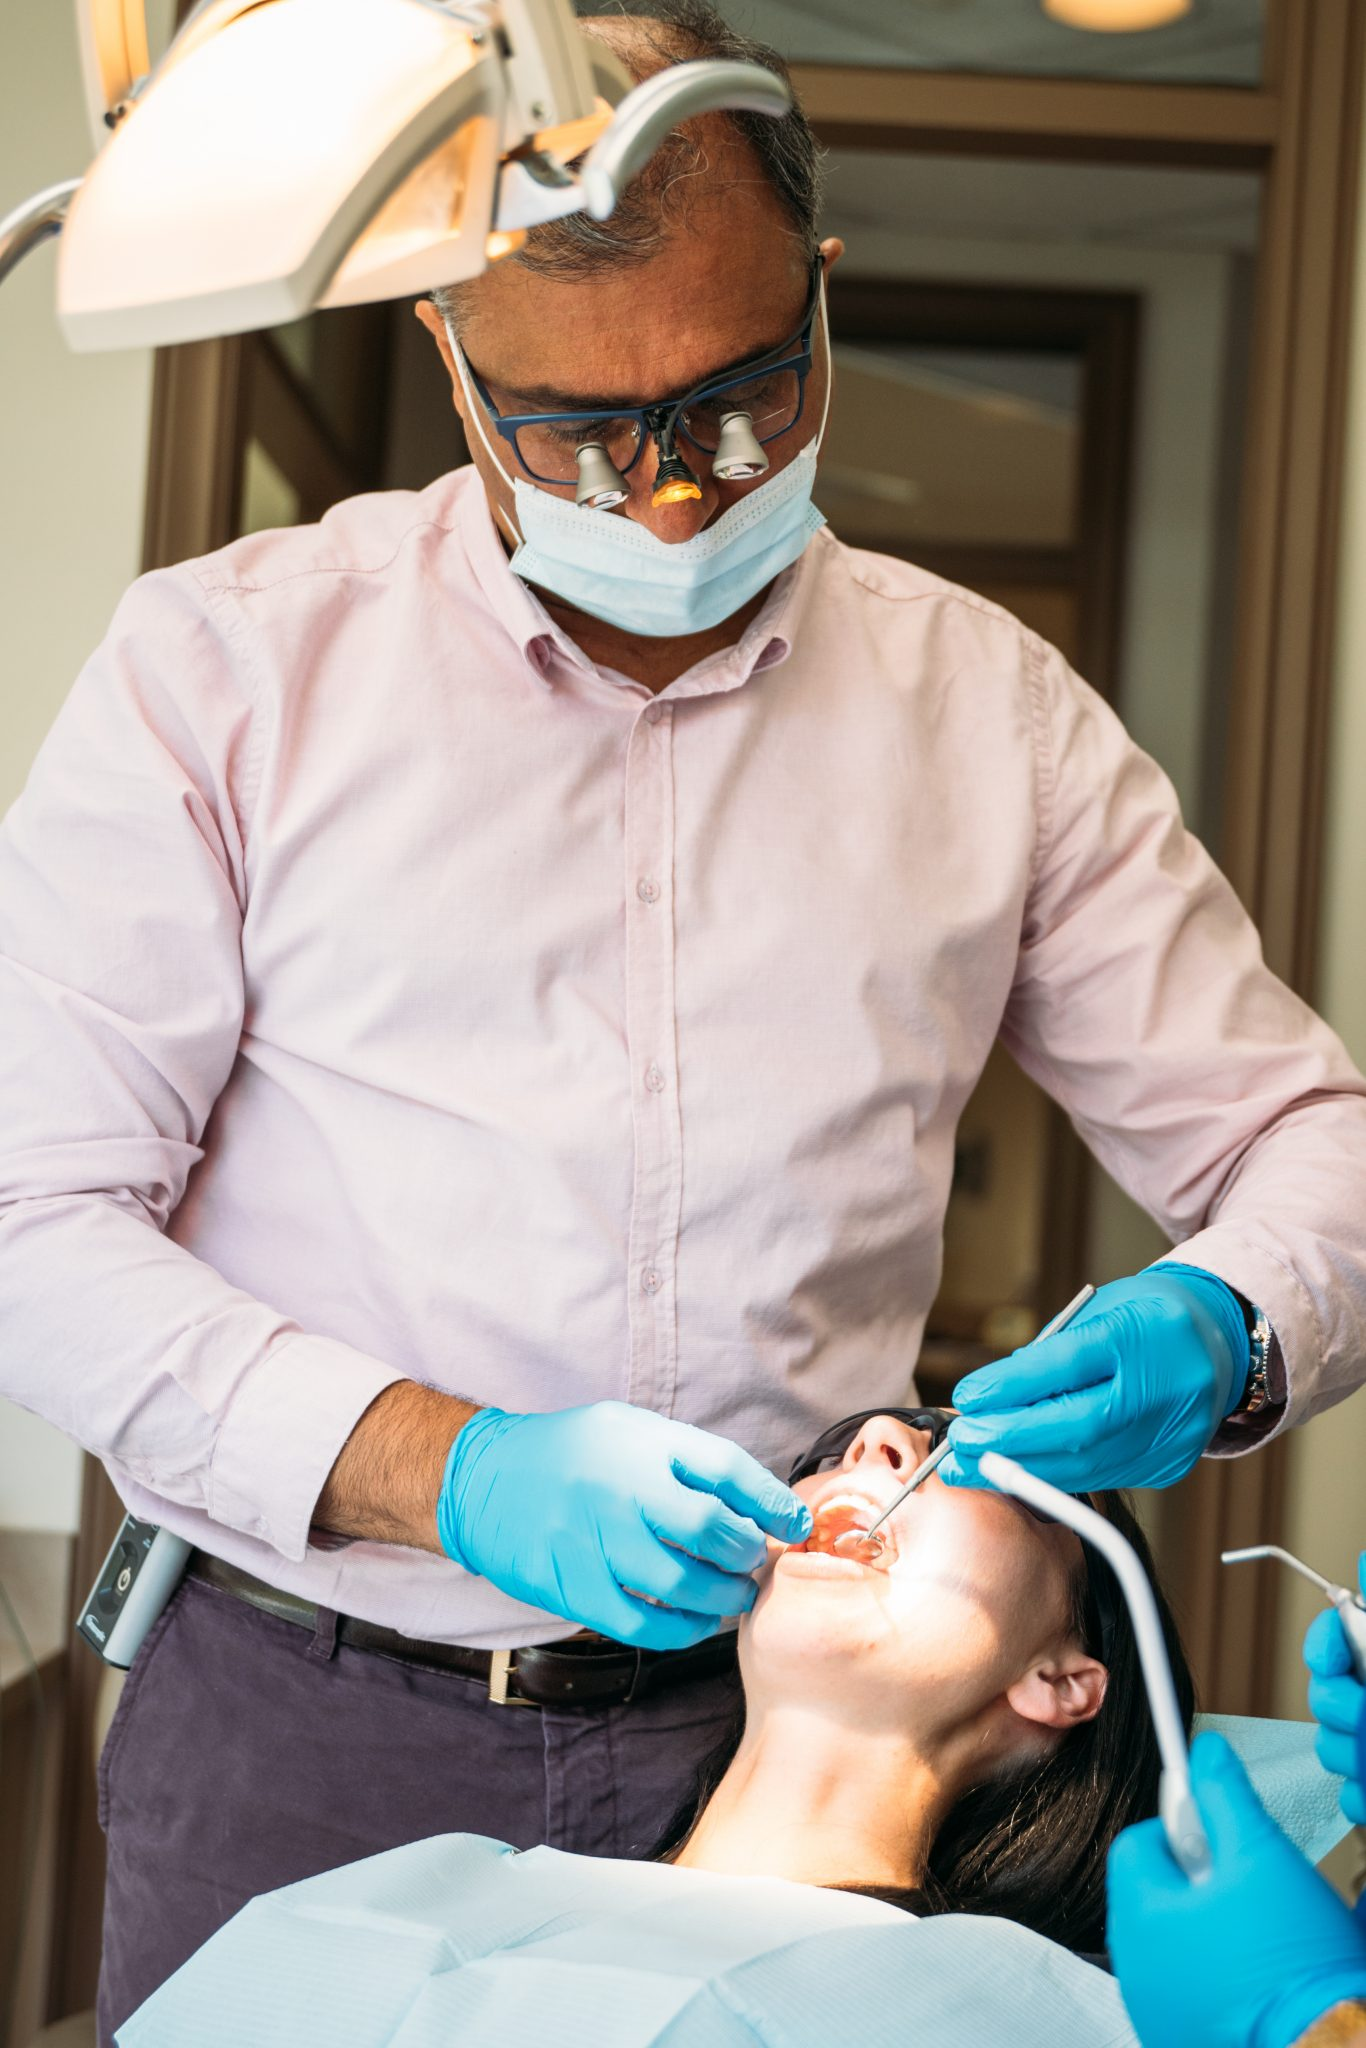 Why You Should Contact Your Emergency Dentist | Kaizen Dental